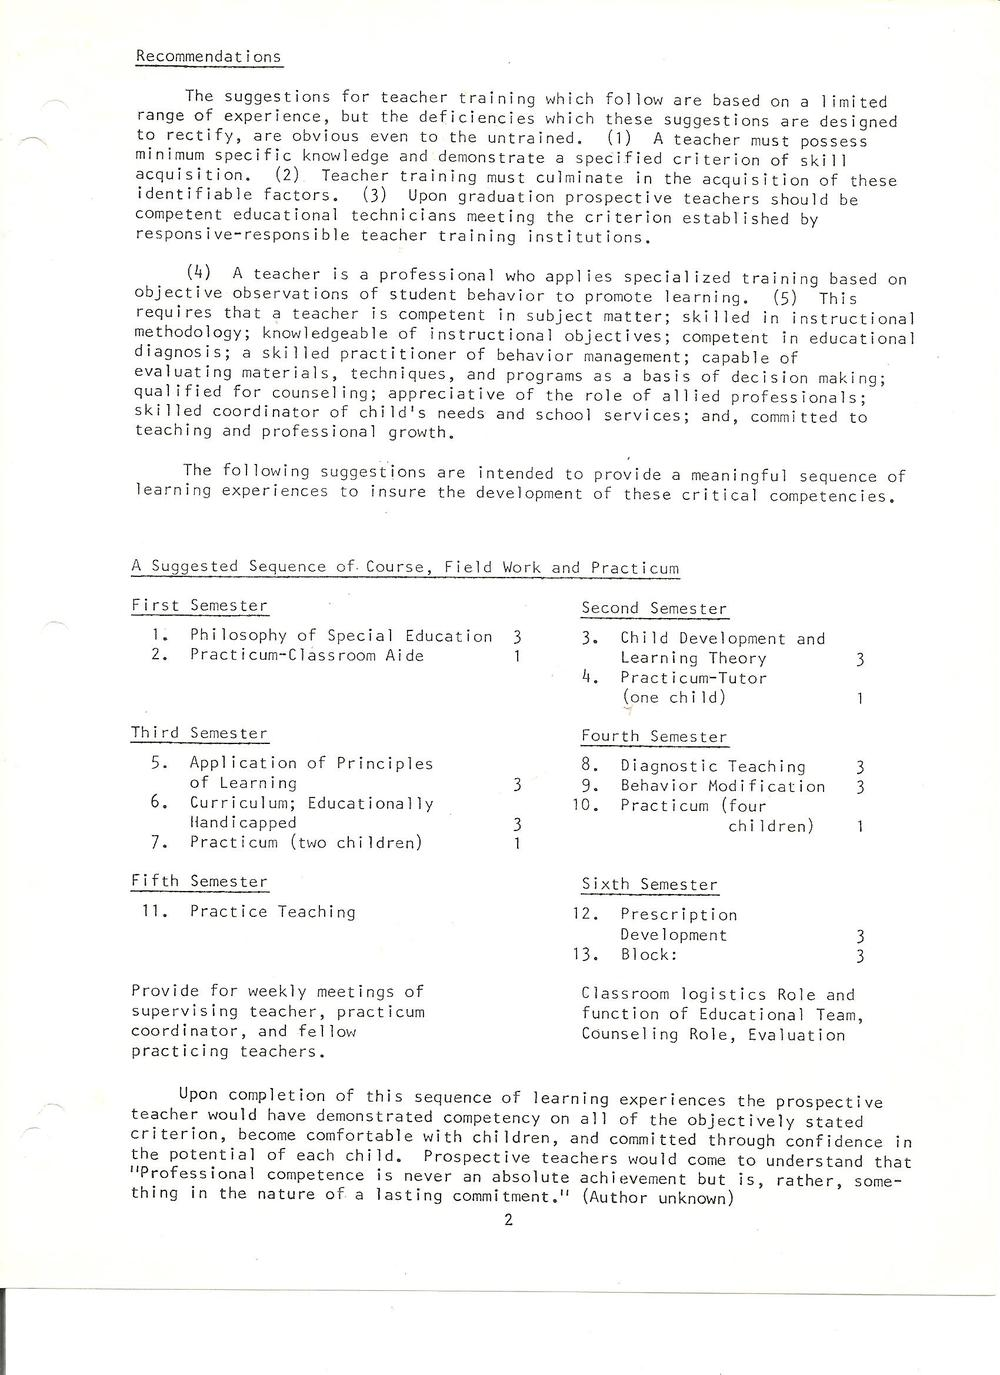 project descriptions proposals actions teacher eduction this paper was written in 1971 during the time frame associated my graduate studies in special education at the university of missouri columbia